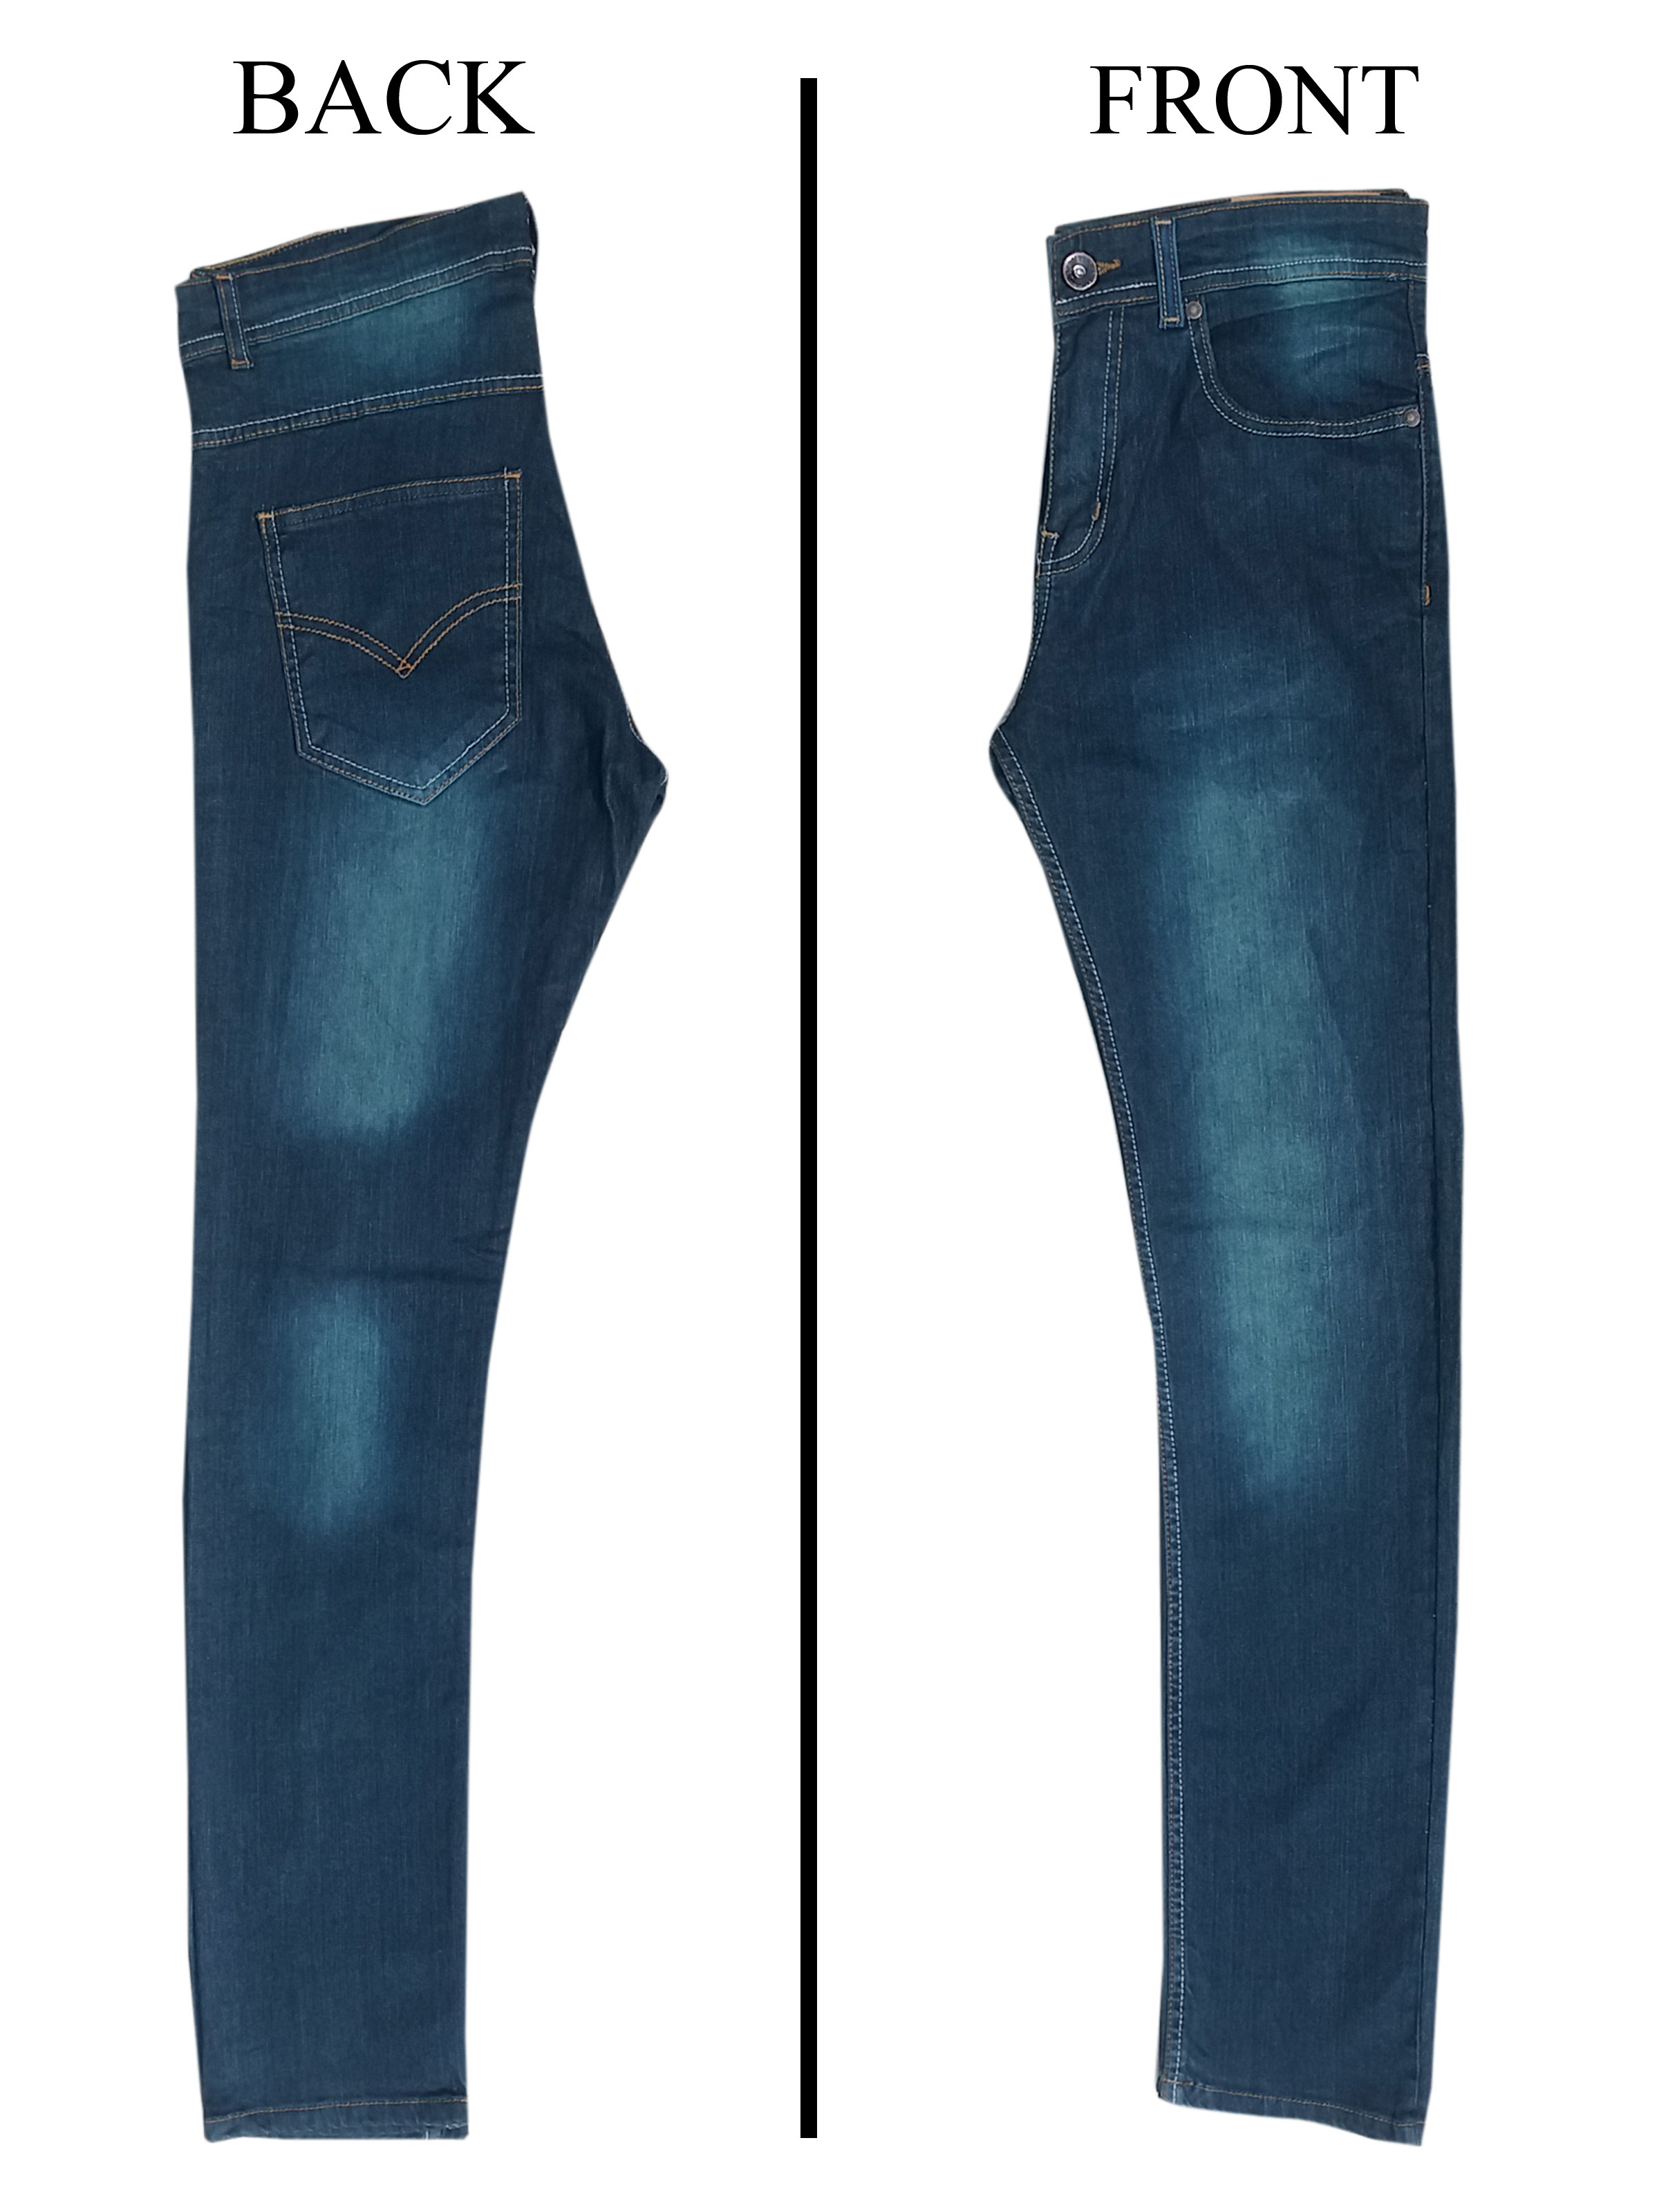 Men Jeans - Article # 166007 - 8.50 USD